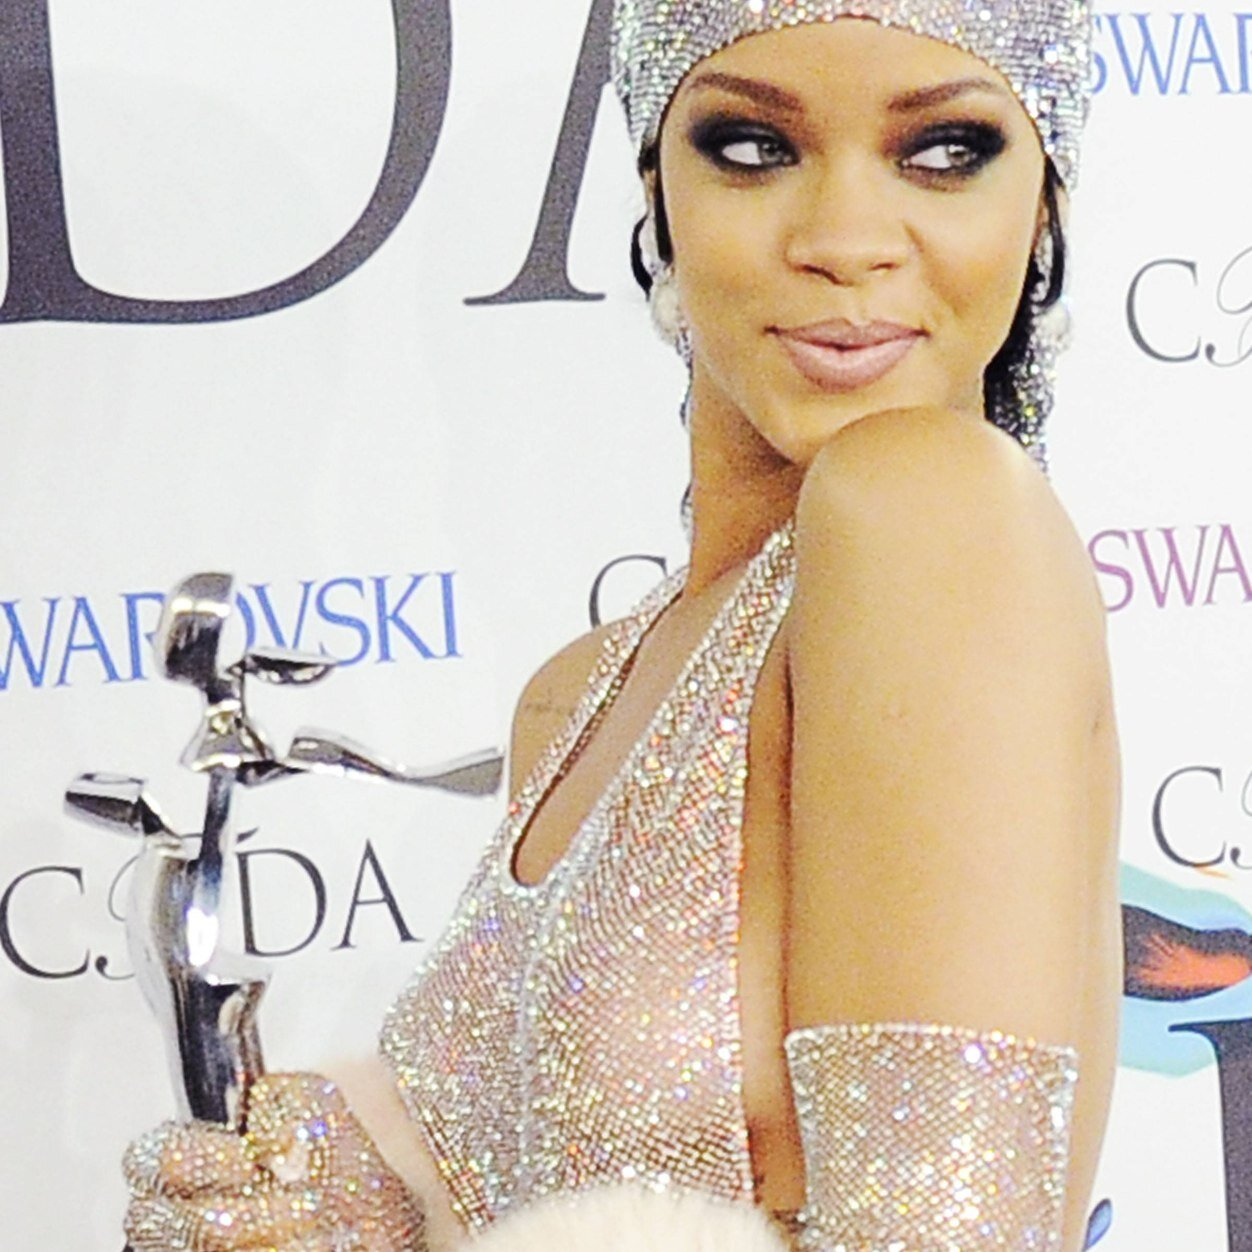 Rihanna News And Photos: Rihanna News (@NavyNews)